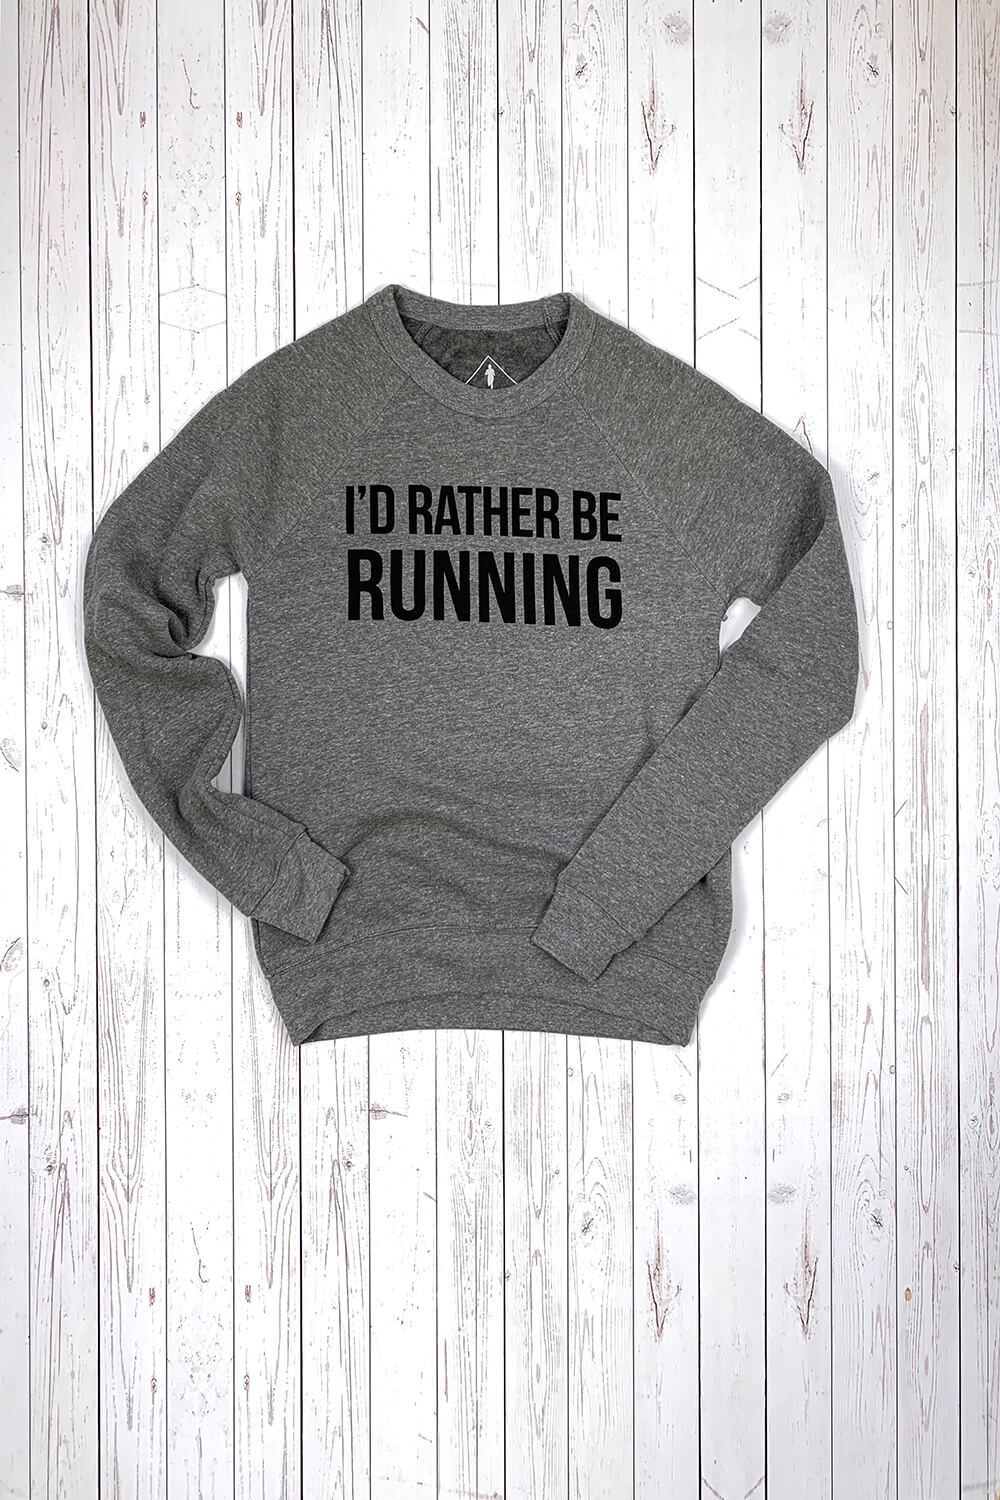 I'd Rather Be Running Sweatshirt - Sarah Marie Design Studio